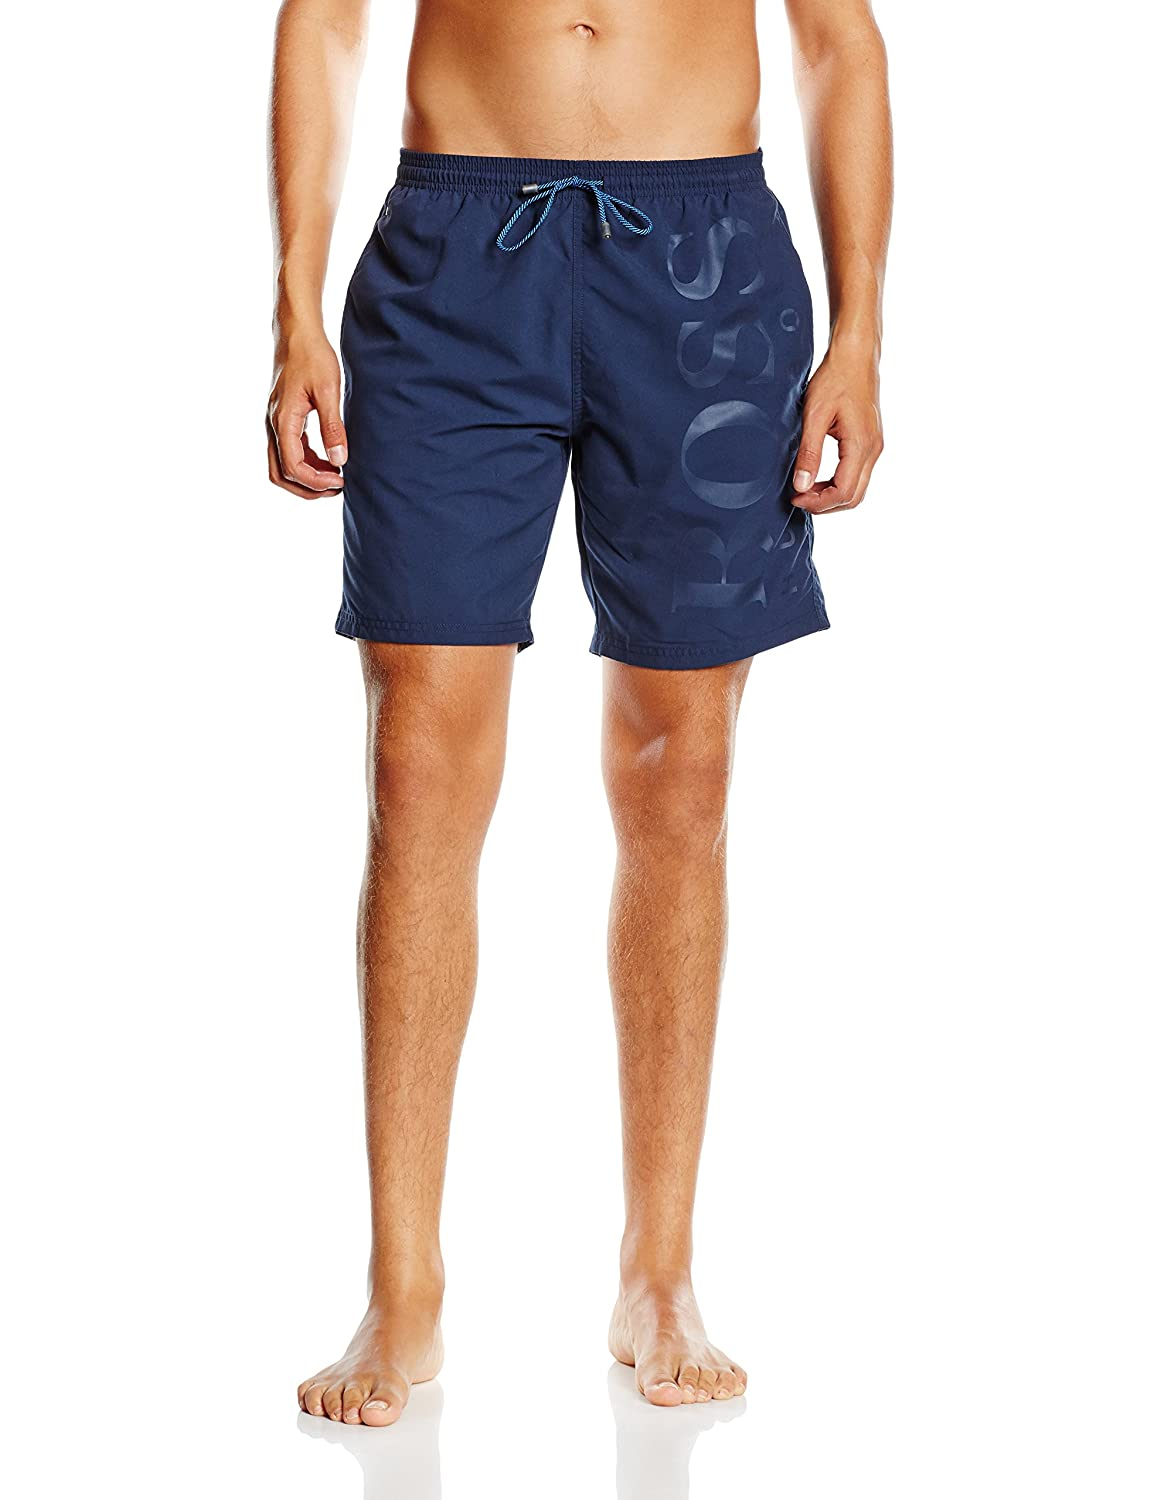 438d91b945 Amazon.com: Hugo Boss Shorts - Mens Orca Swim Shorts in Navy: Clothing